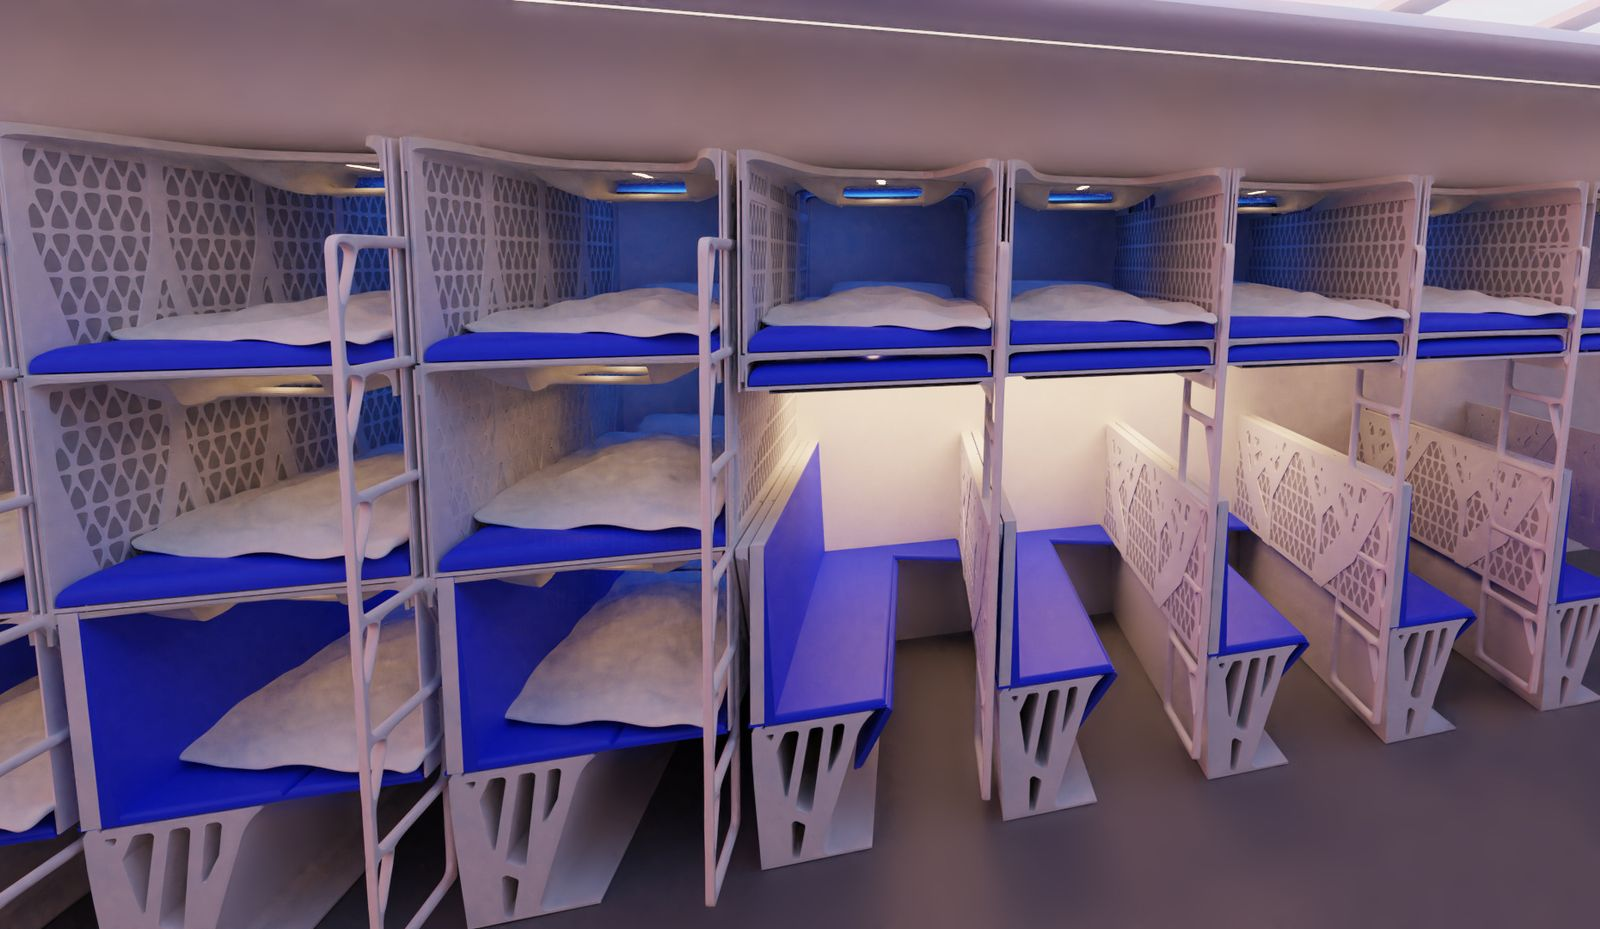 Crystal Cabin Award / Delft University of Technology / Collapsible beds for the flying V